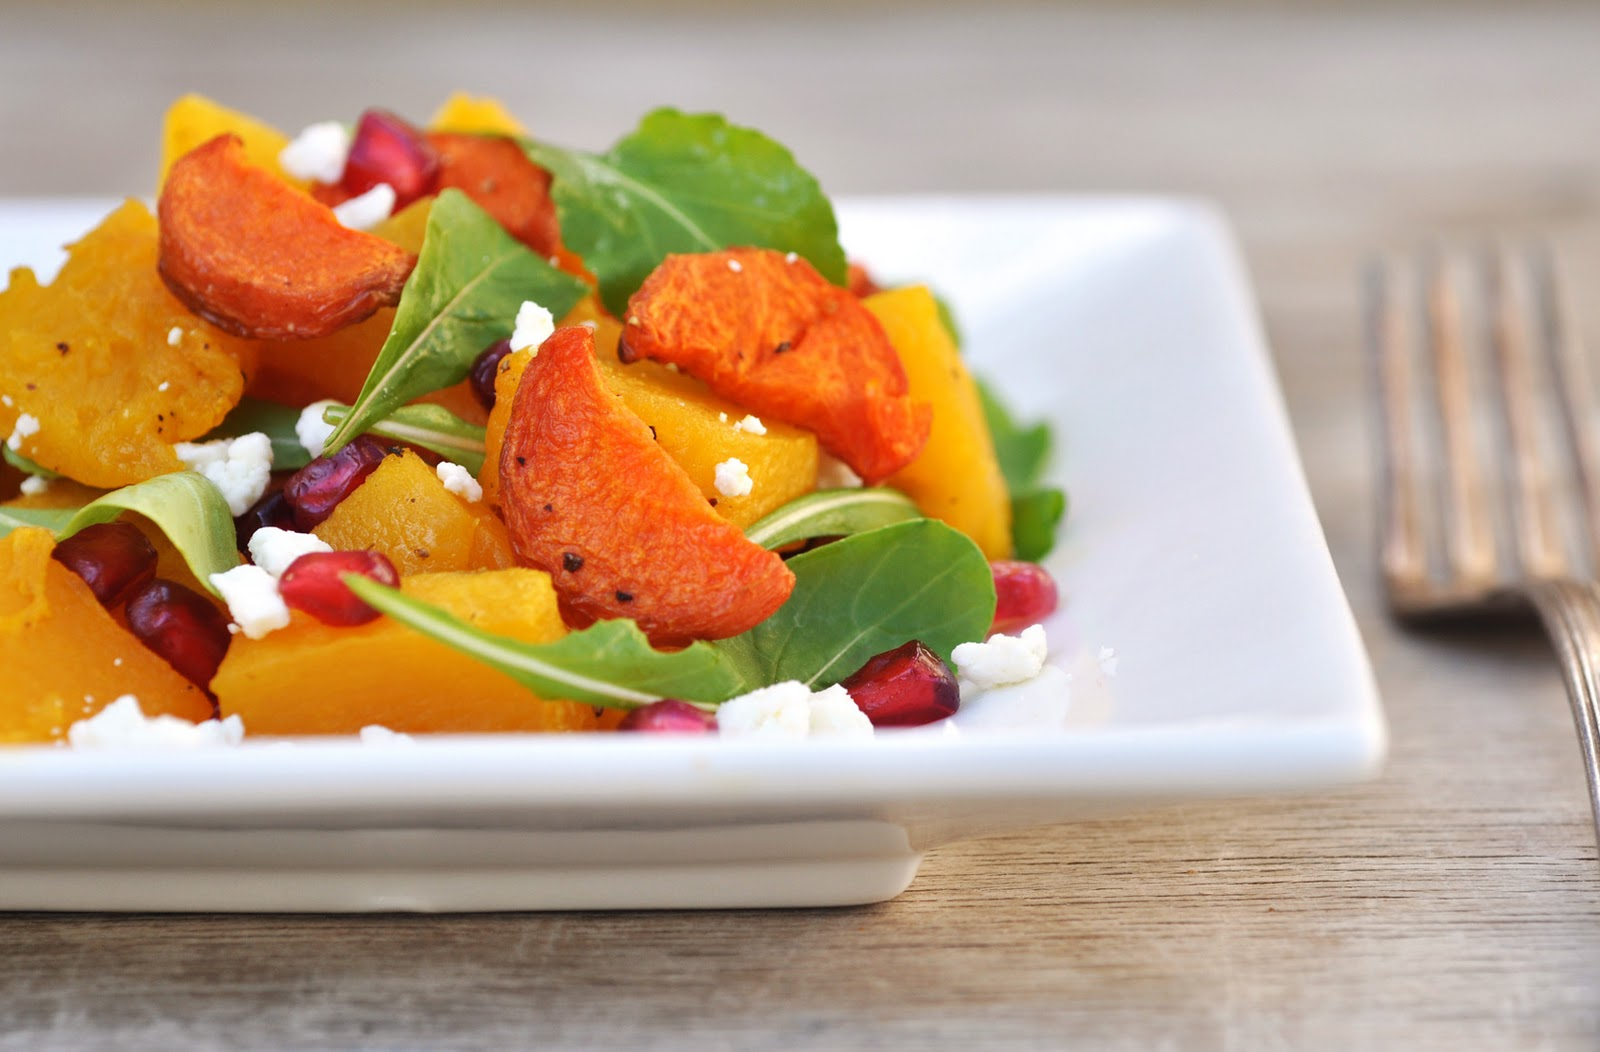 Anja's Food 4 Thought: Roasted Pumpkin Pomegranate Salad